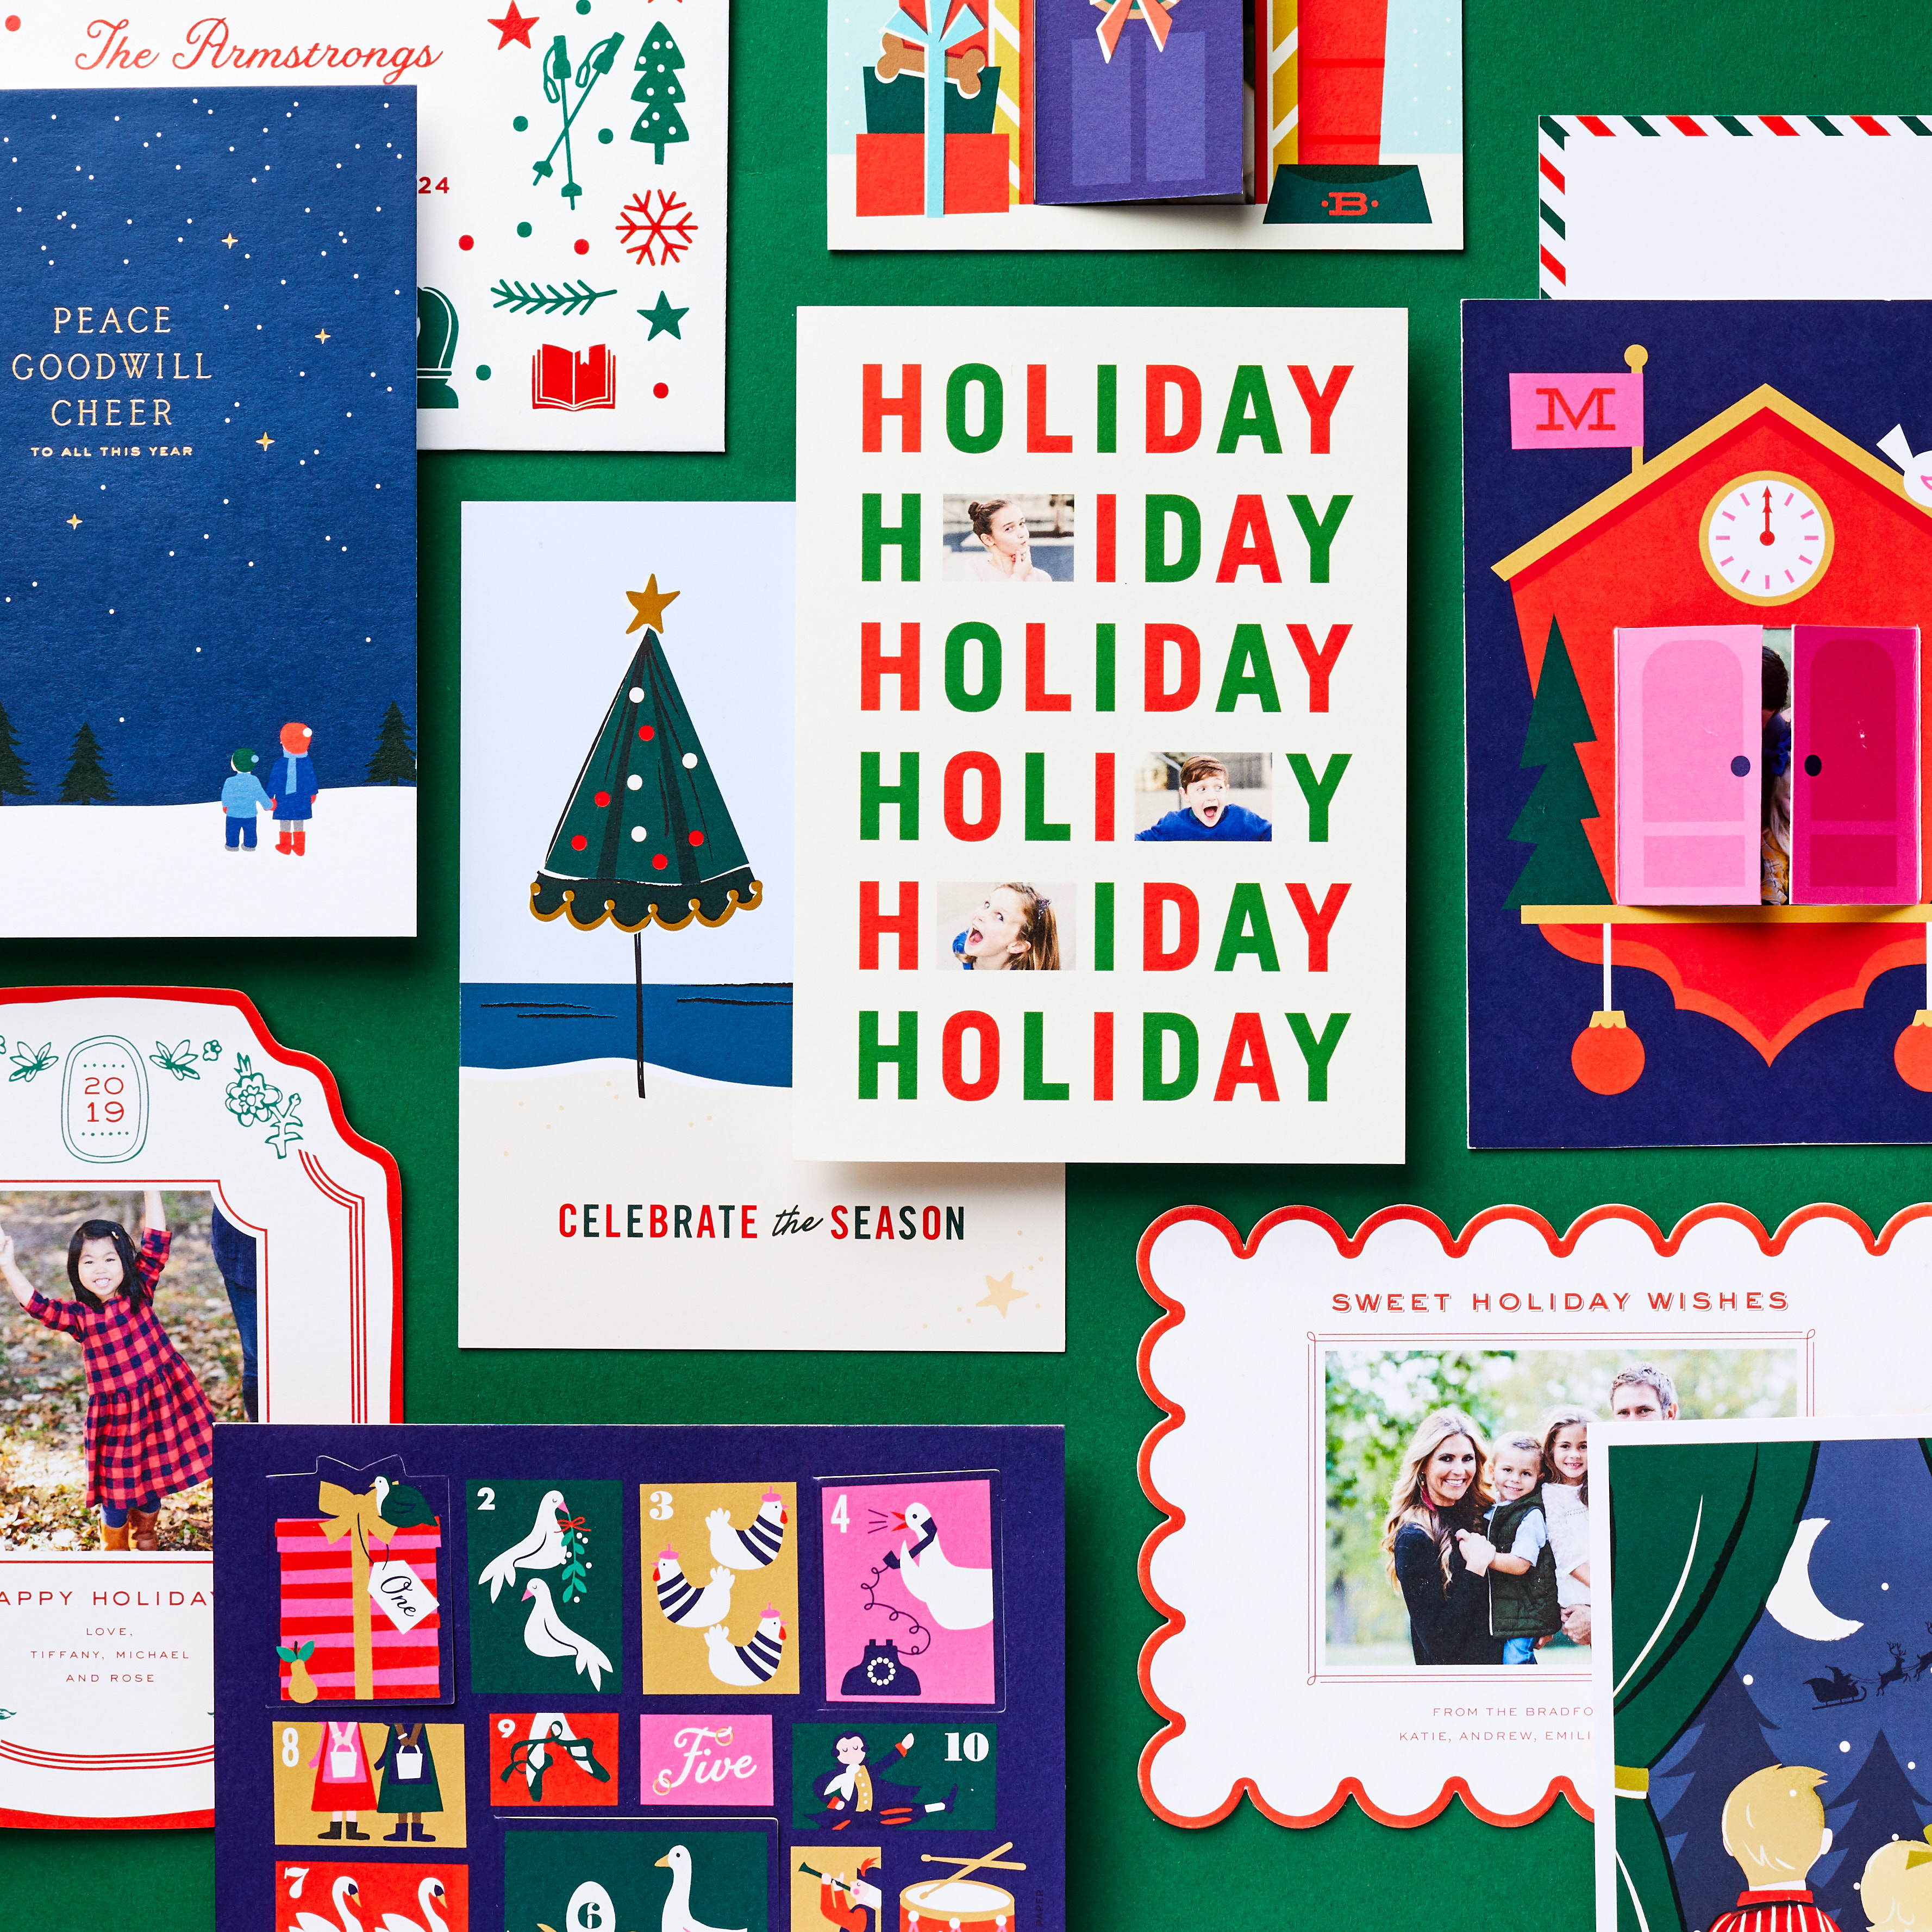 personalized holiday card designs